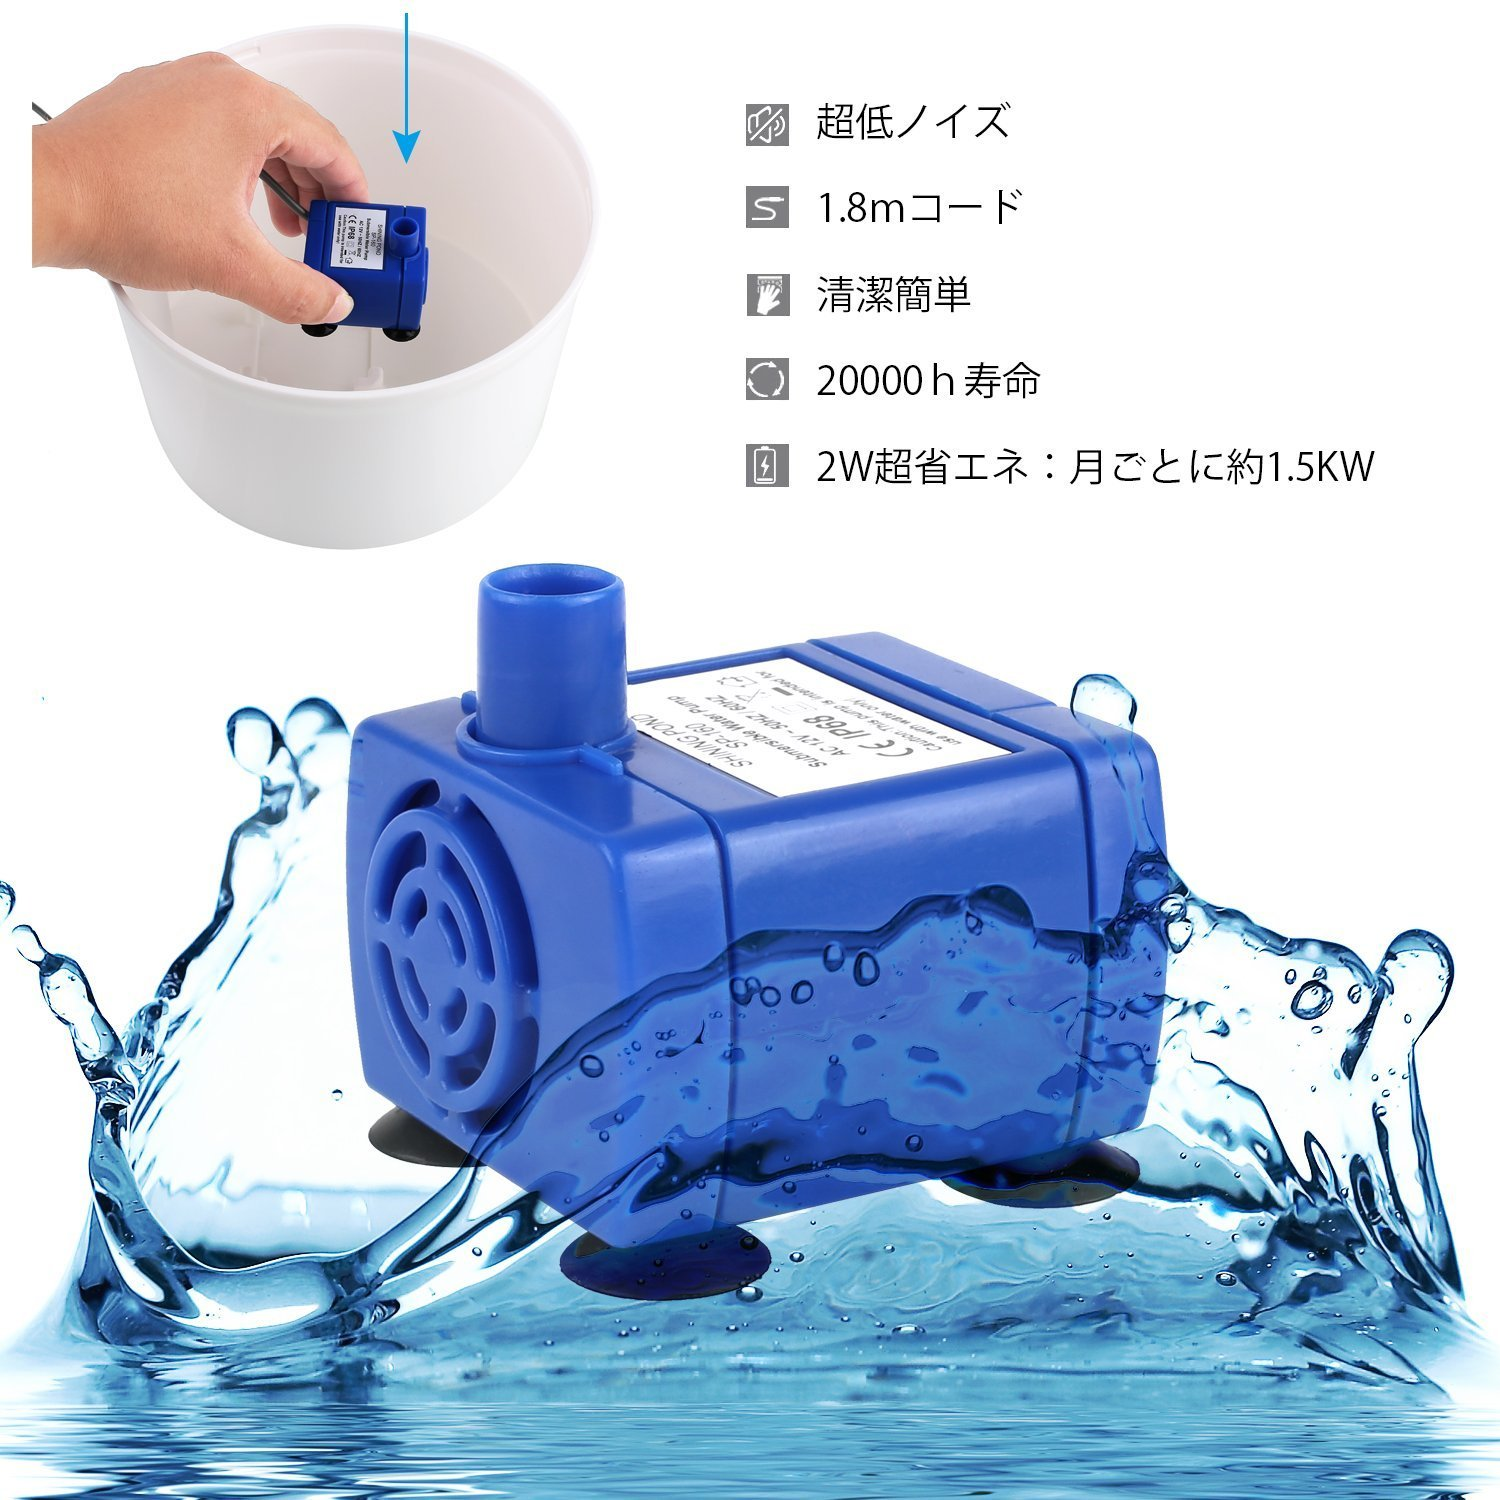 25ml 5 In 1 Tap Water Treatment And Fish Protector Radient Acurel Bodyguard brand New